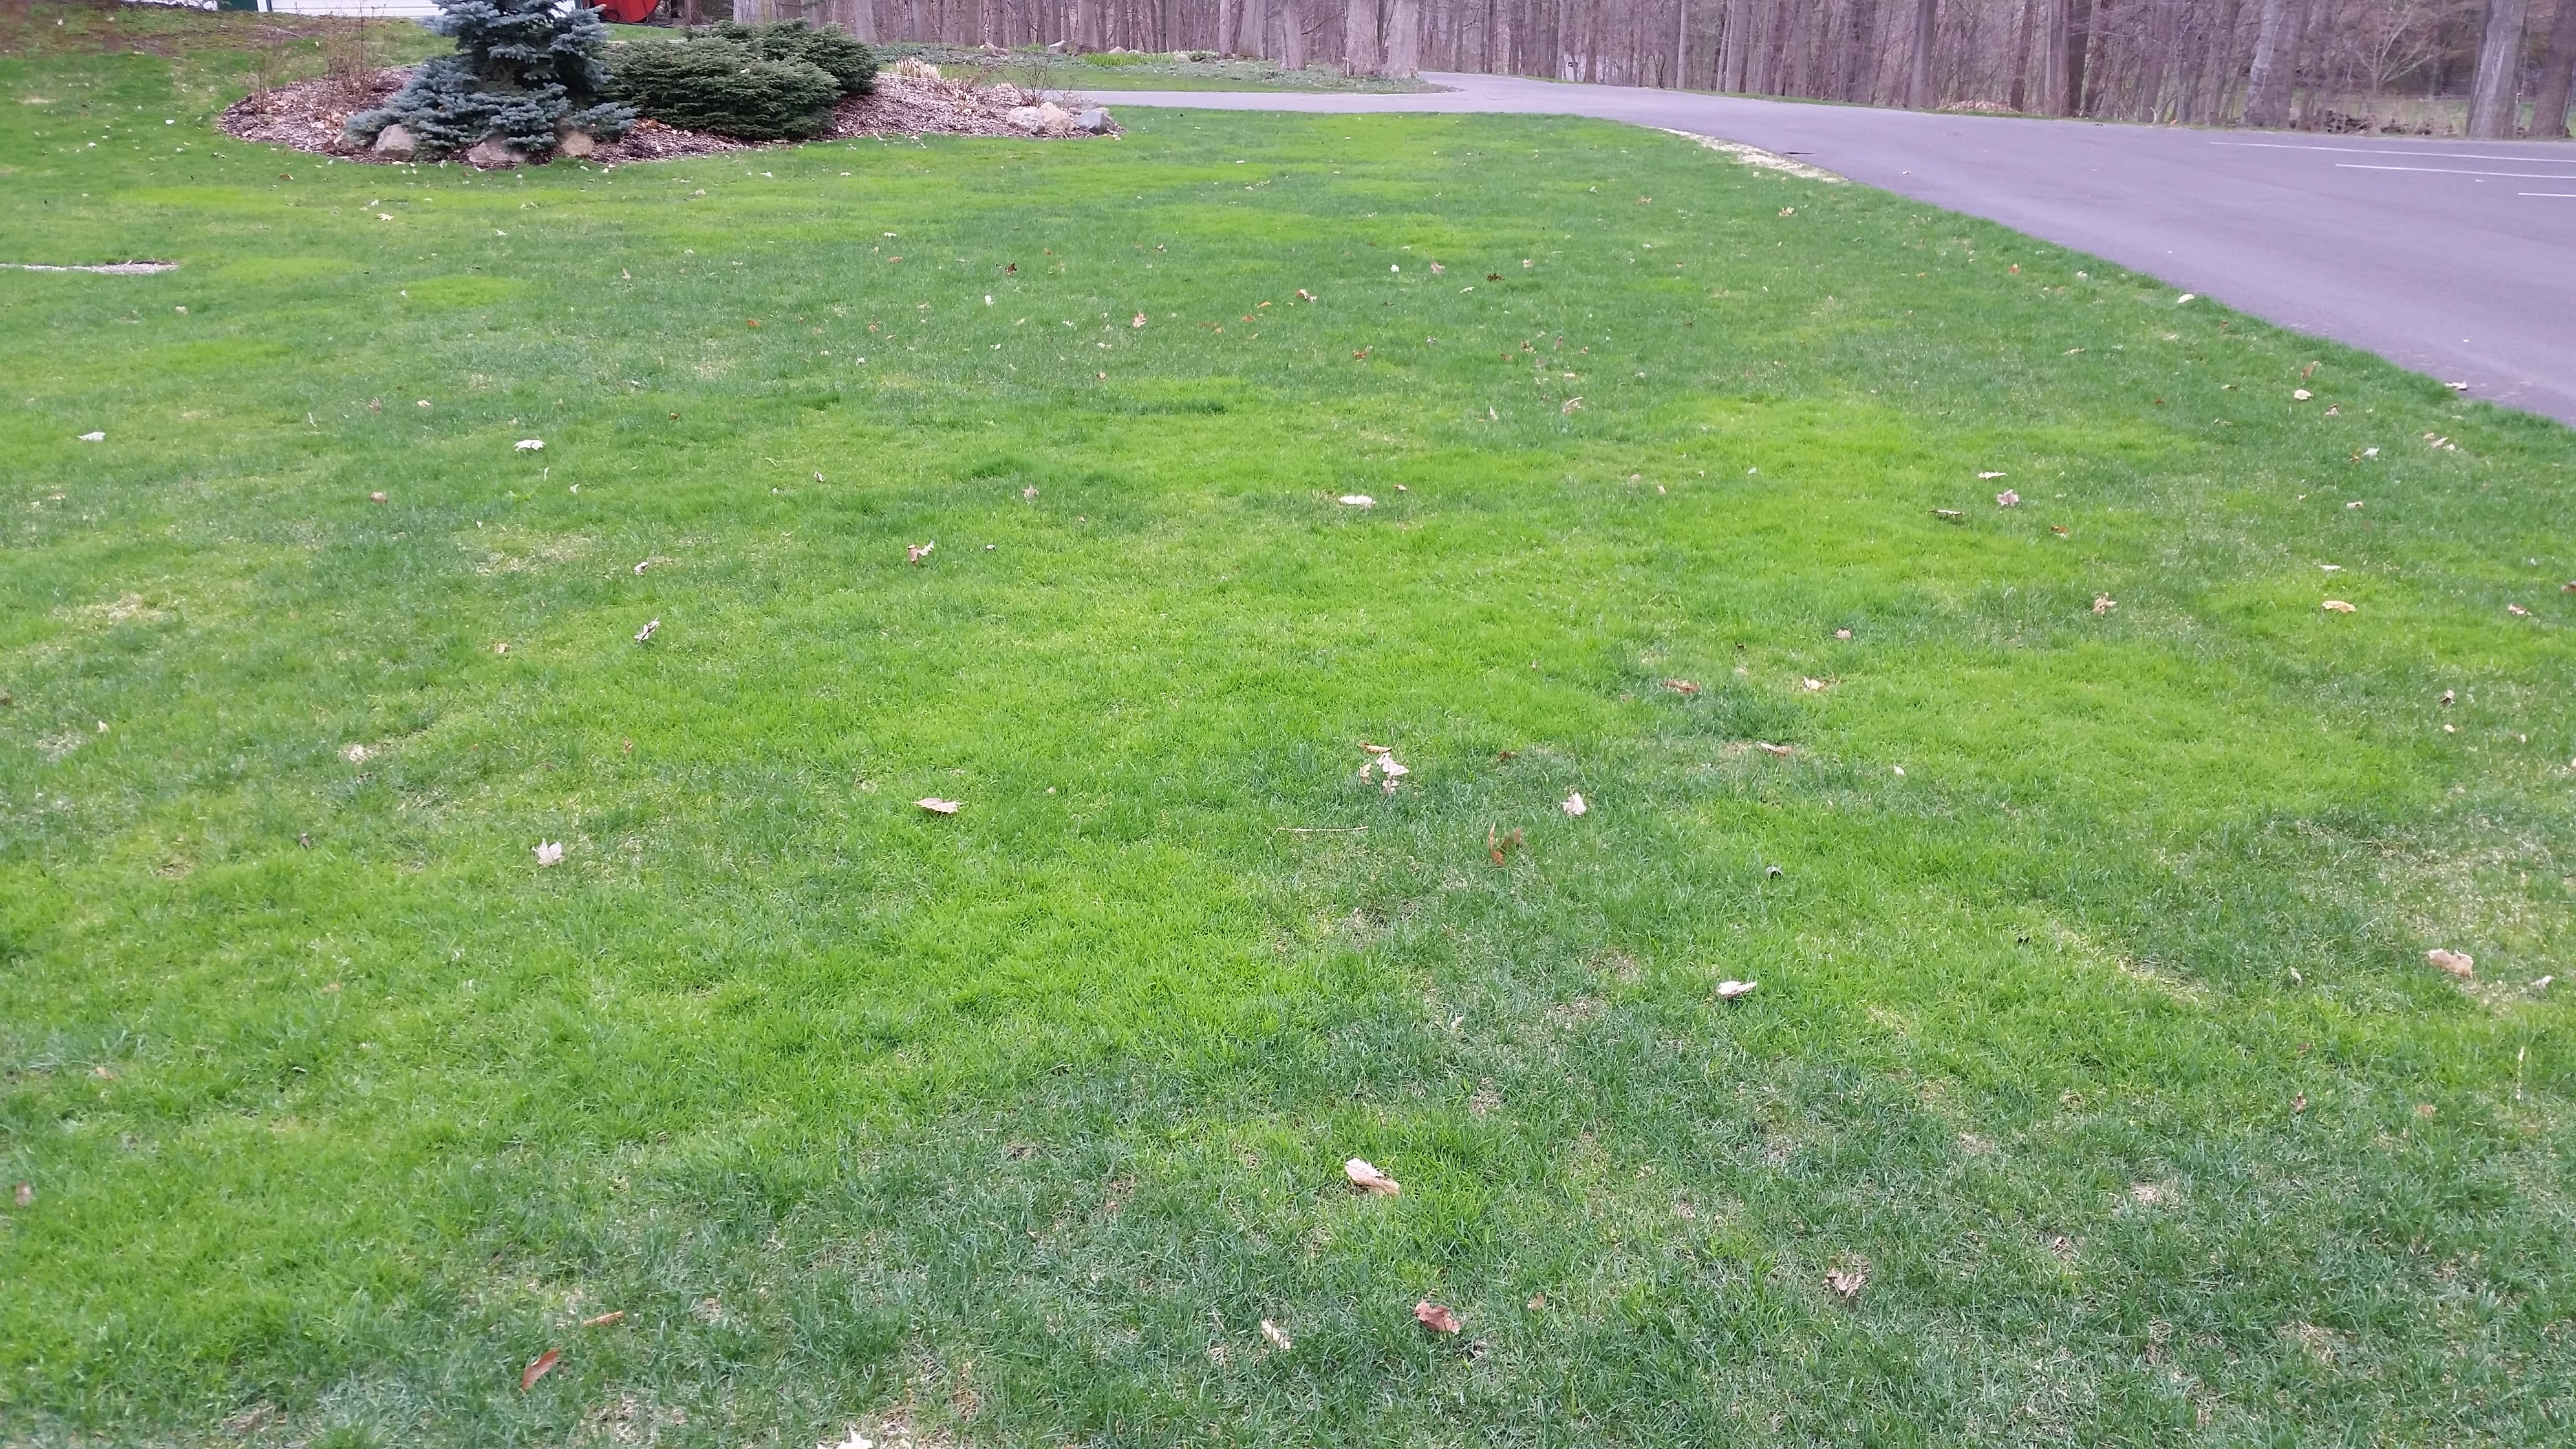 Catchy Lawns Home Depot Lawns Lowes Gypsum Spotty Lawn Patchy Lawns Tuff Turf Molebusters Gypsum houzz-02 Gypsum For Lawns